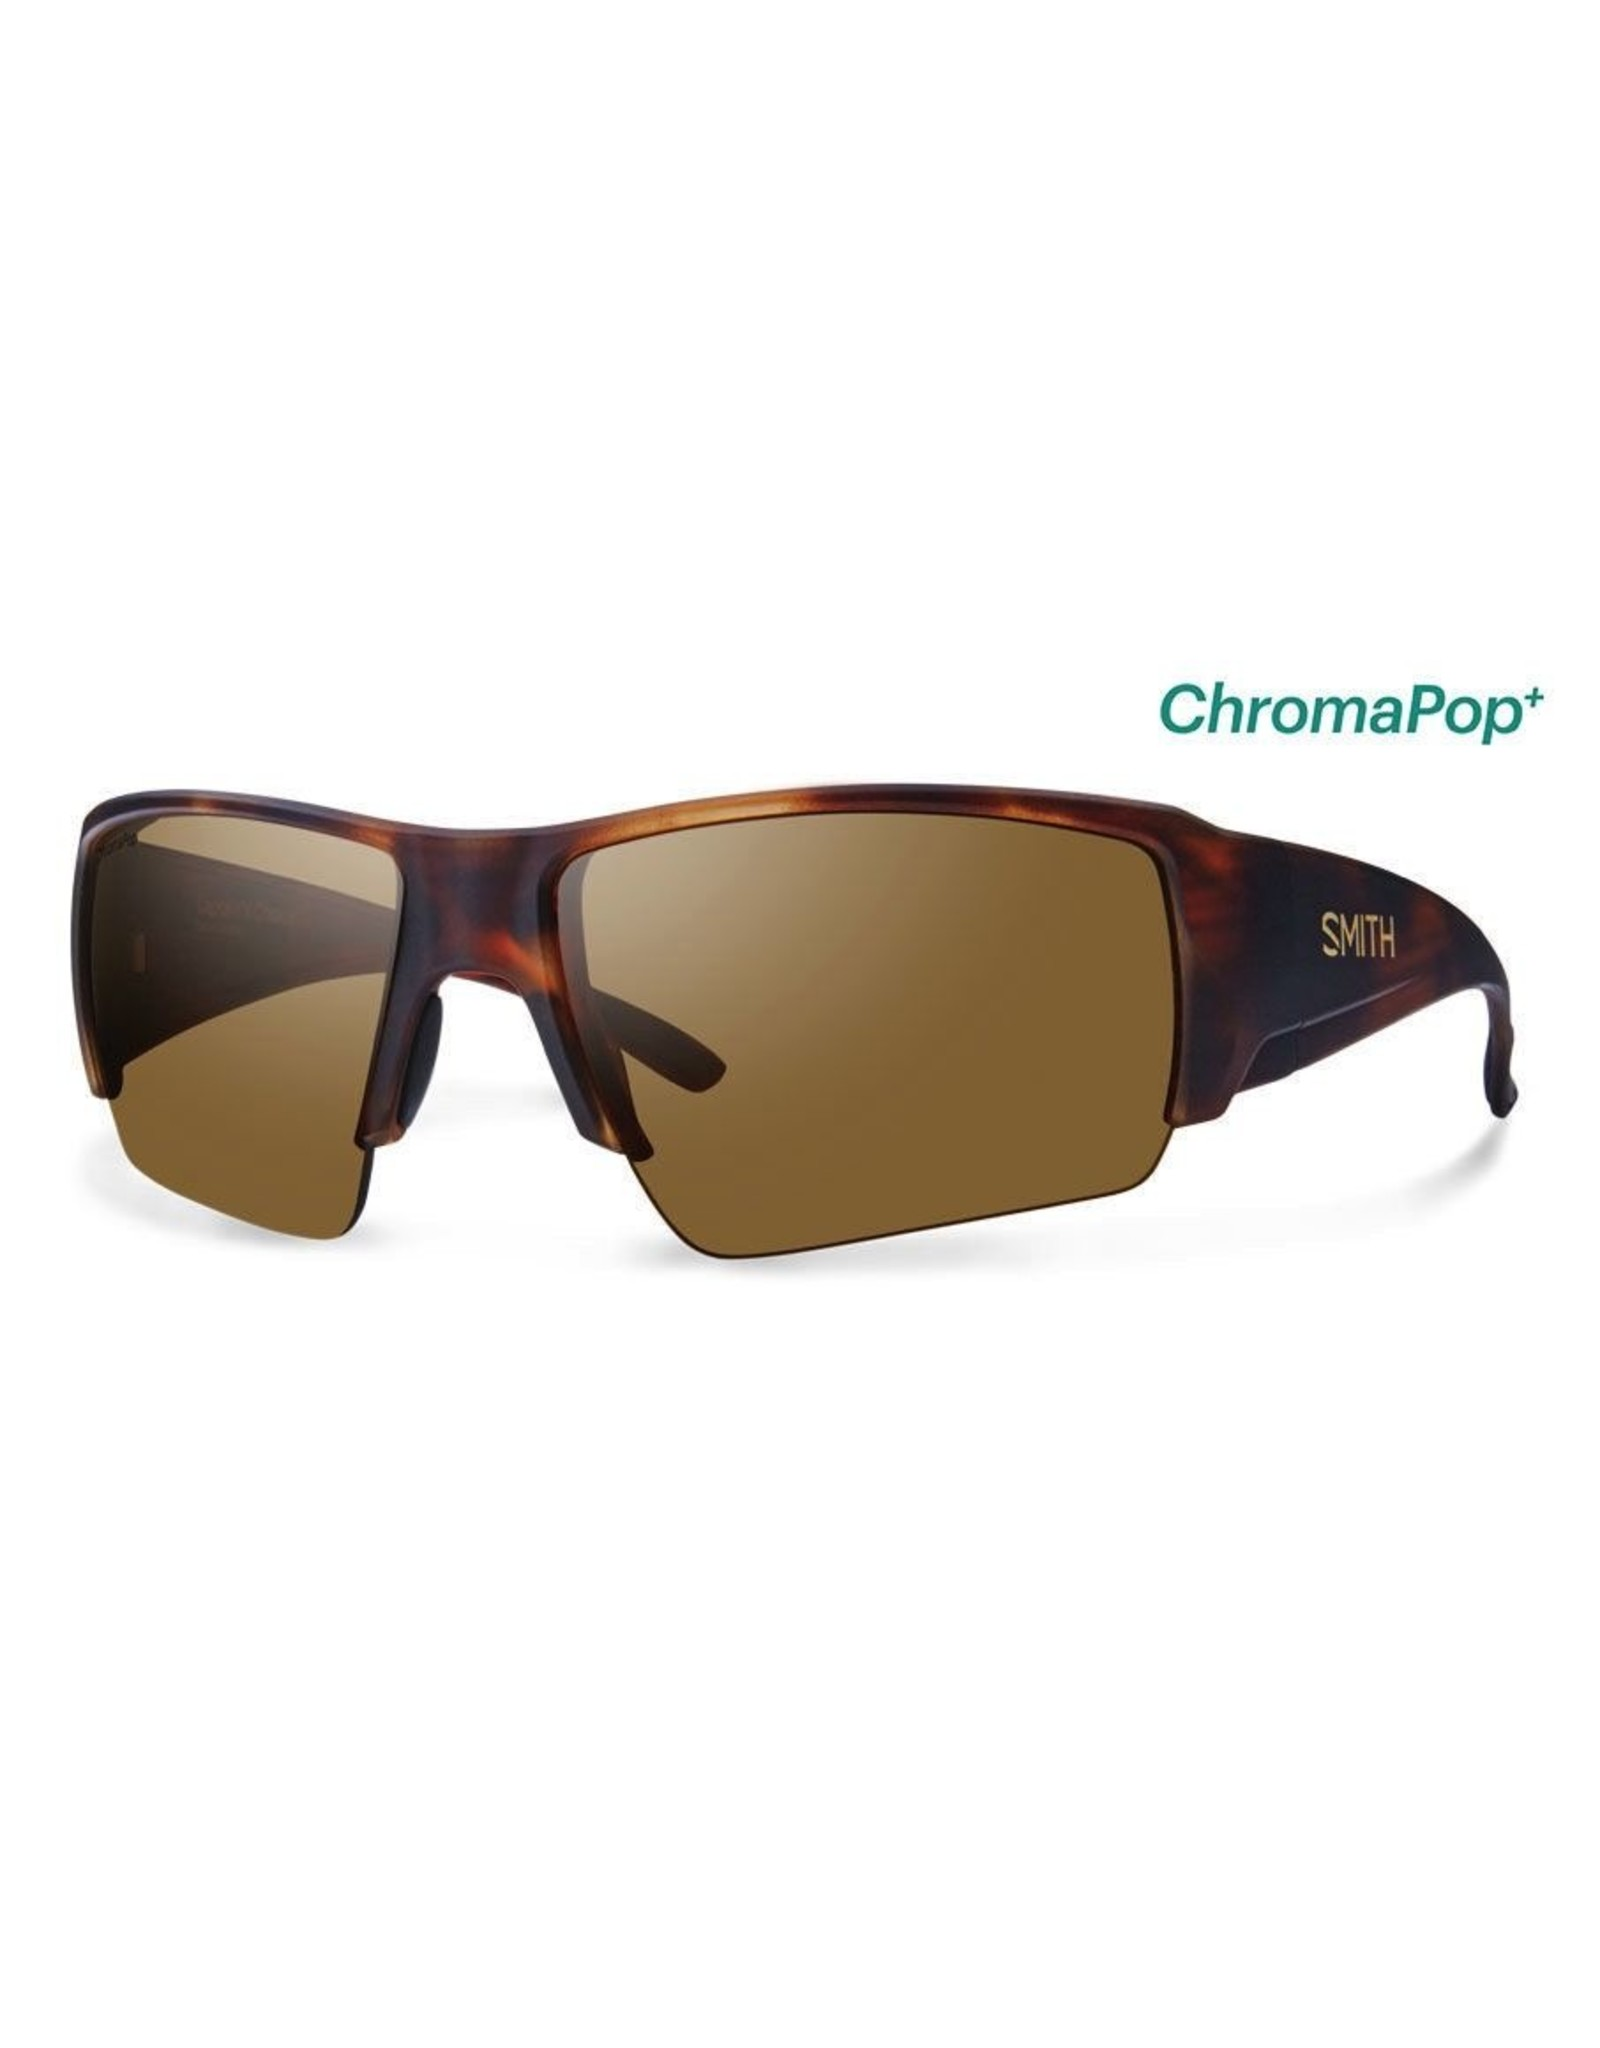 Smith SMITH Captain's Choice (ChromaPop Polarized Brown) Matte Havana Frame